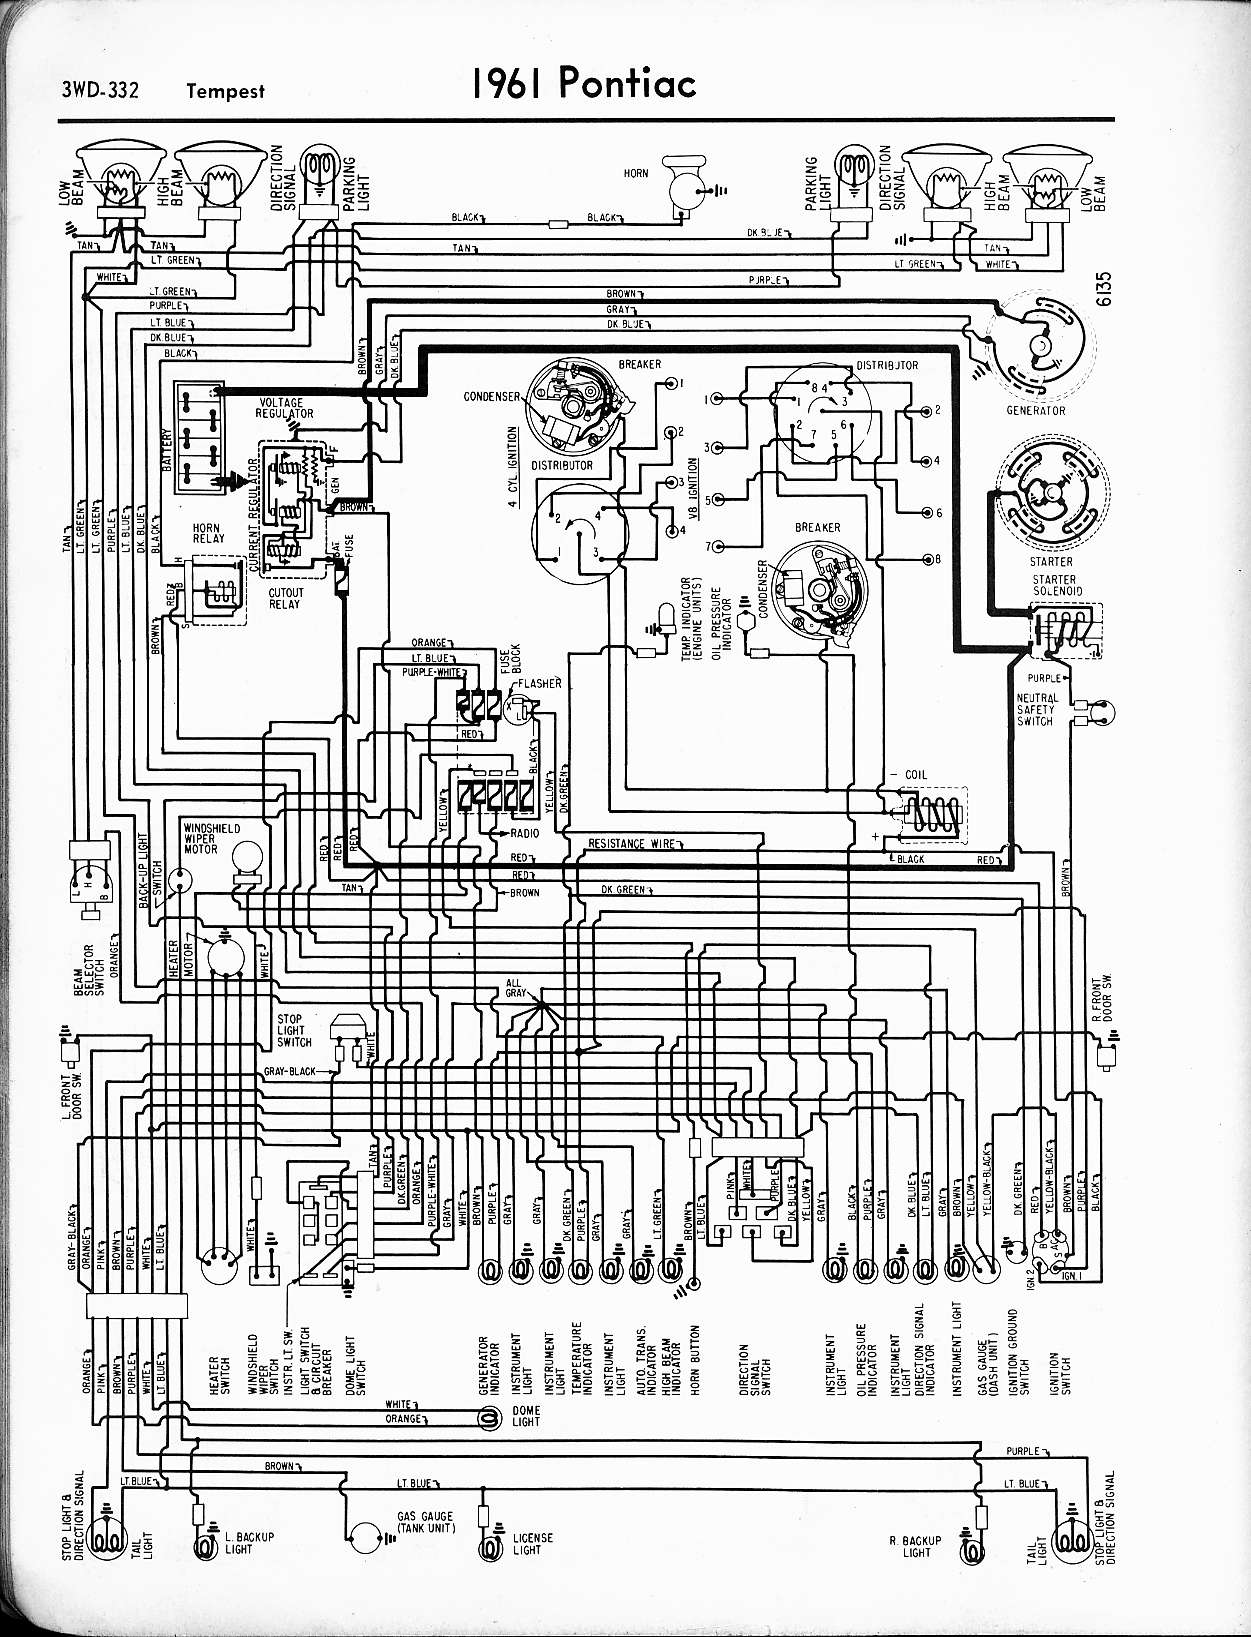 MWire5765 332 wallace racing wiring diagrams 1998 pontiac bonneville wiring diagram at bakdesigns.co